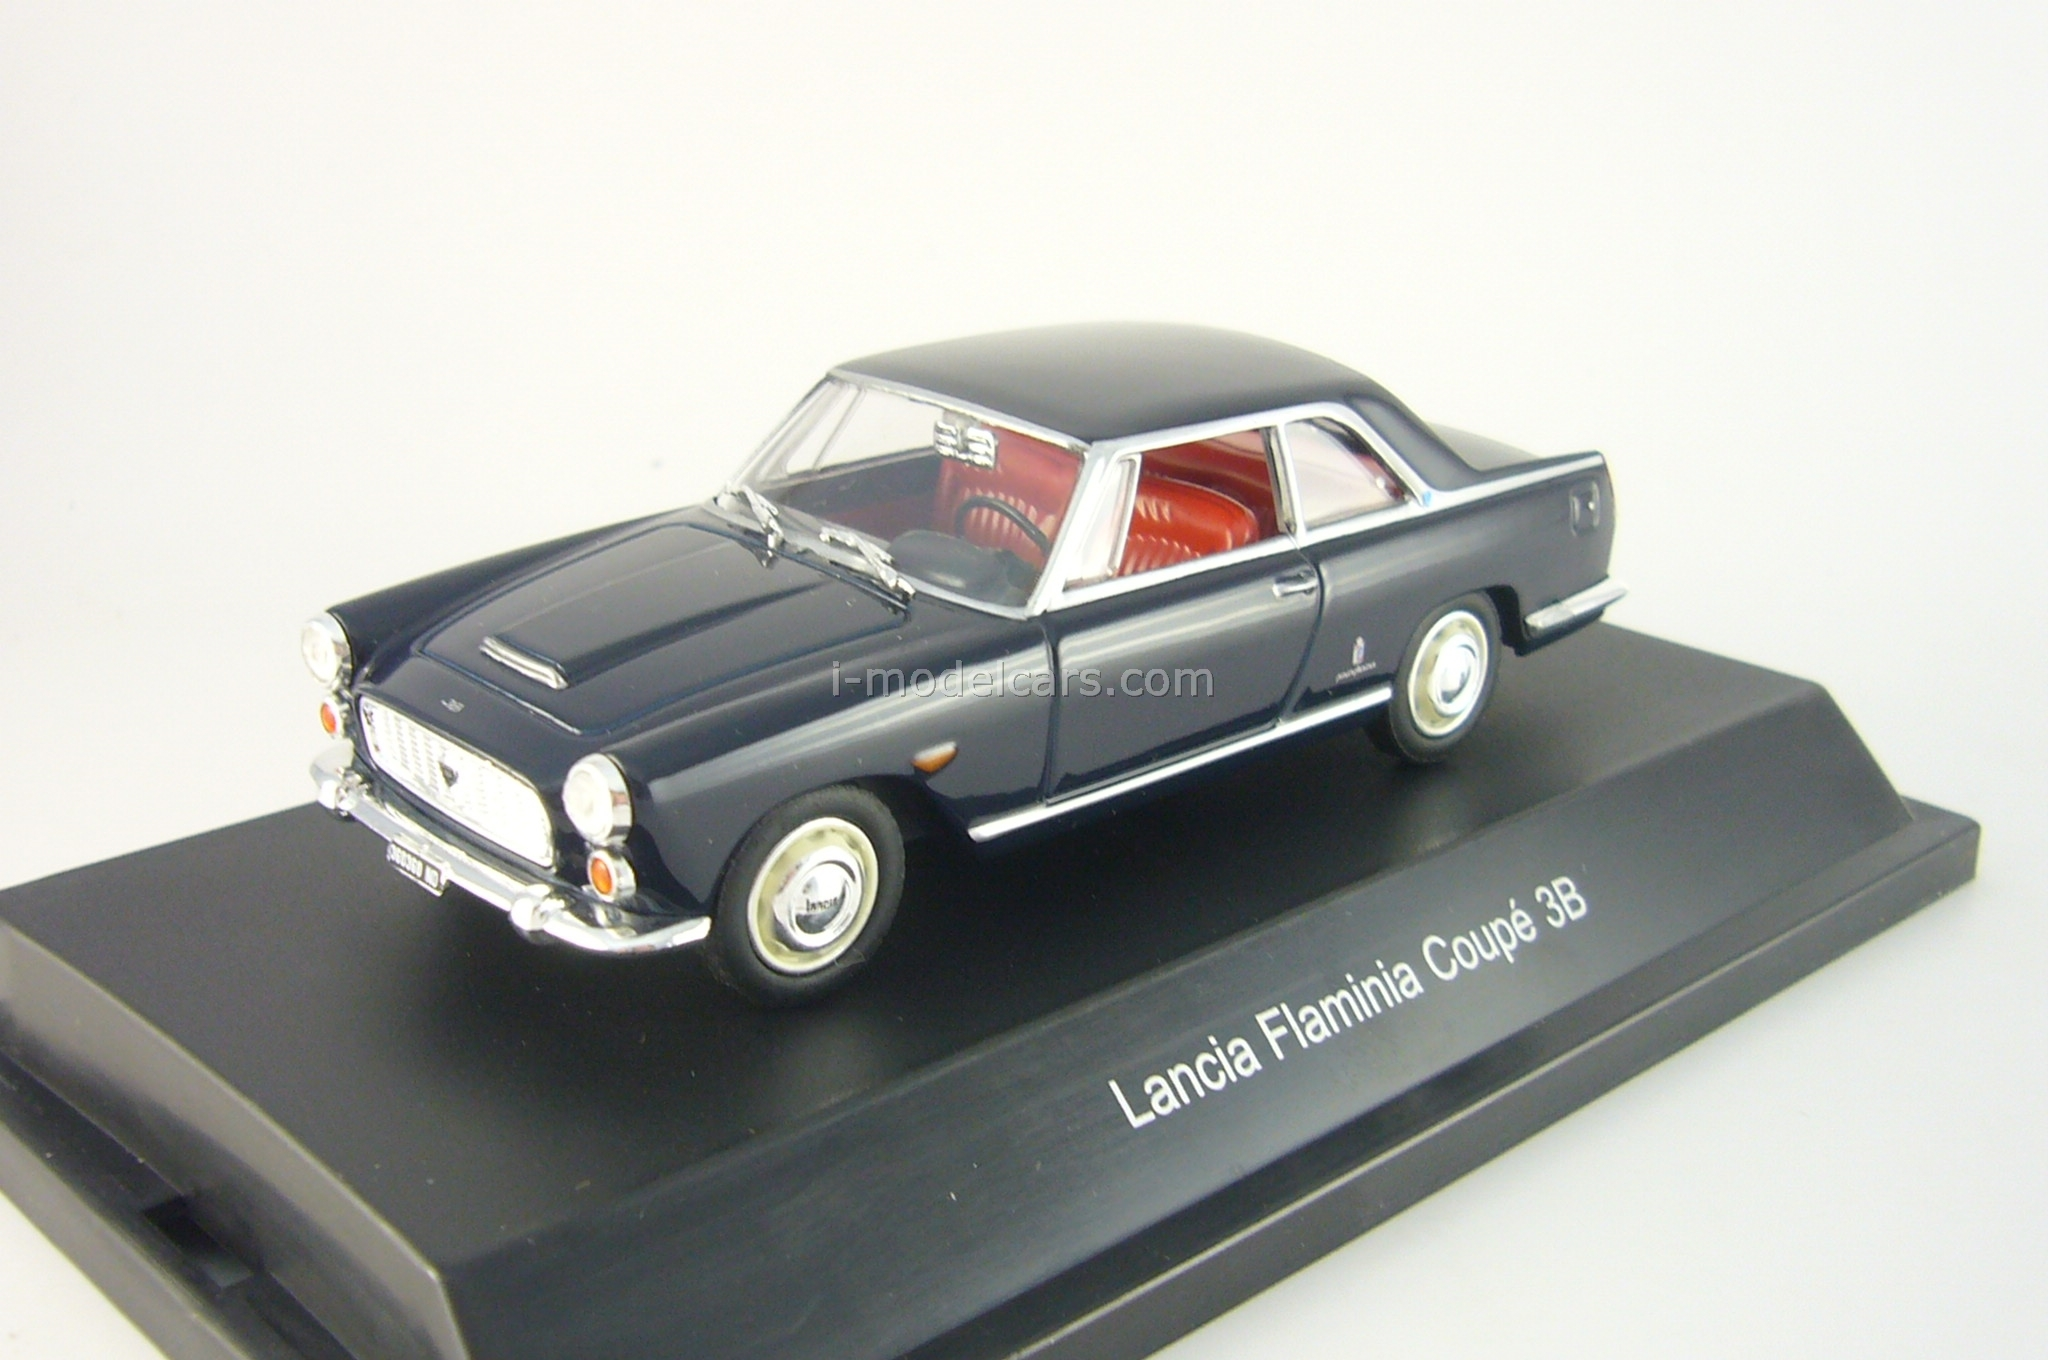 model cars lancia flaminia coupe 3b dkl.-blue starline 1:43